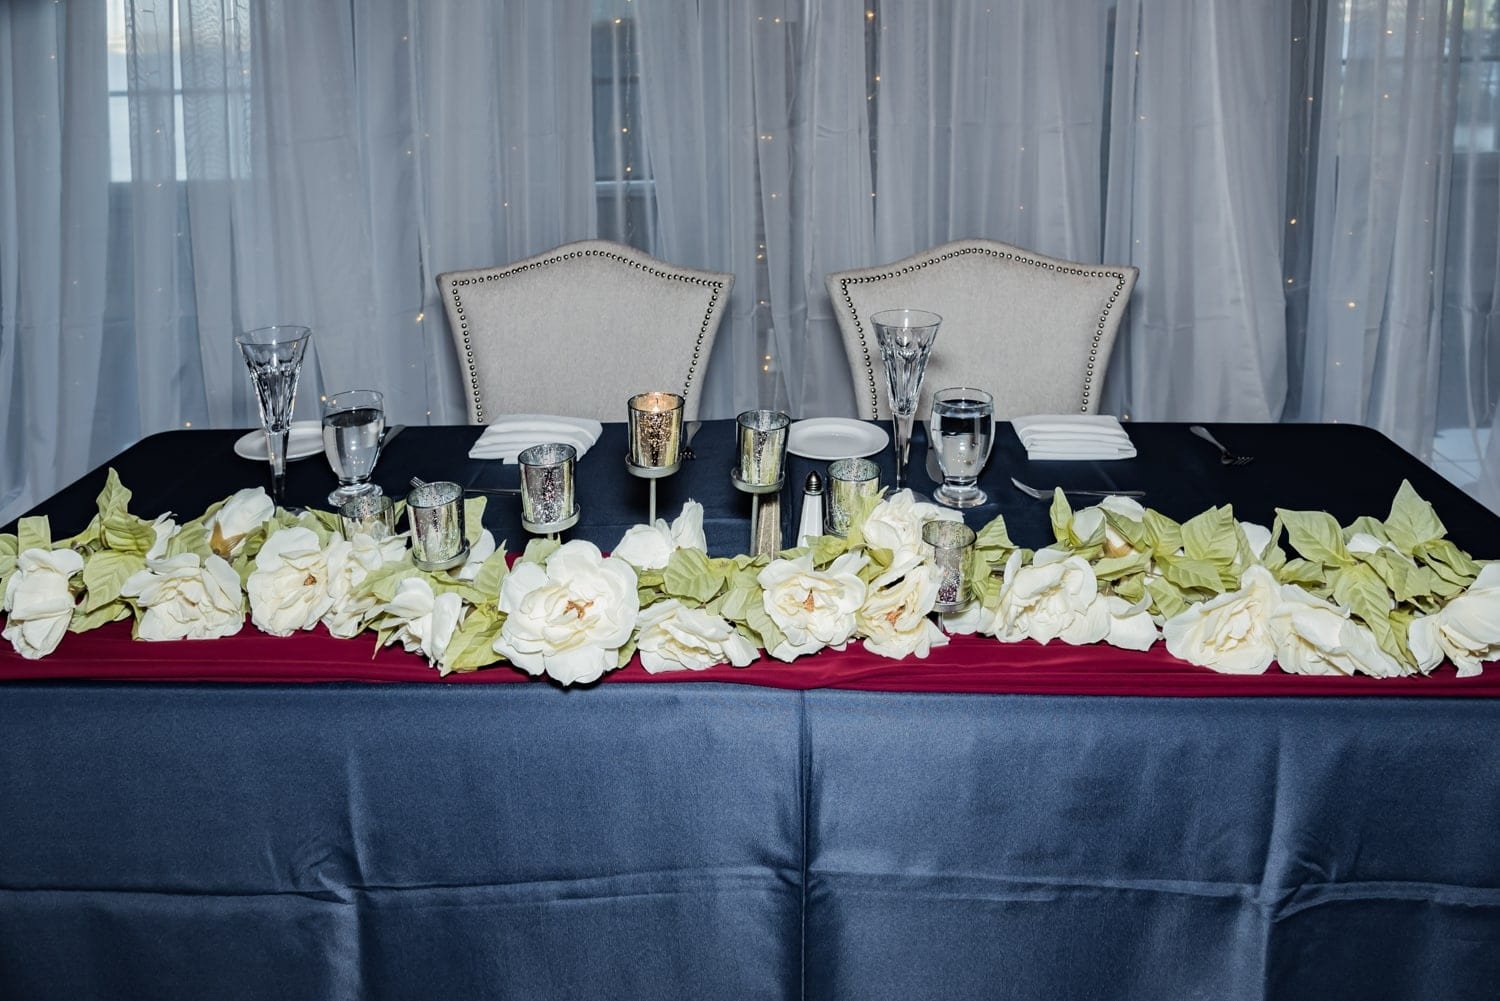 the sweetheart table at a the Bedford Basin Farmer's Market wedding.